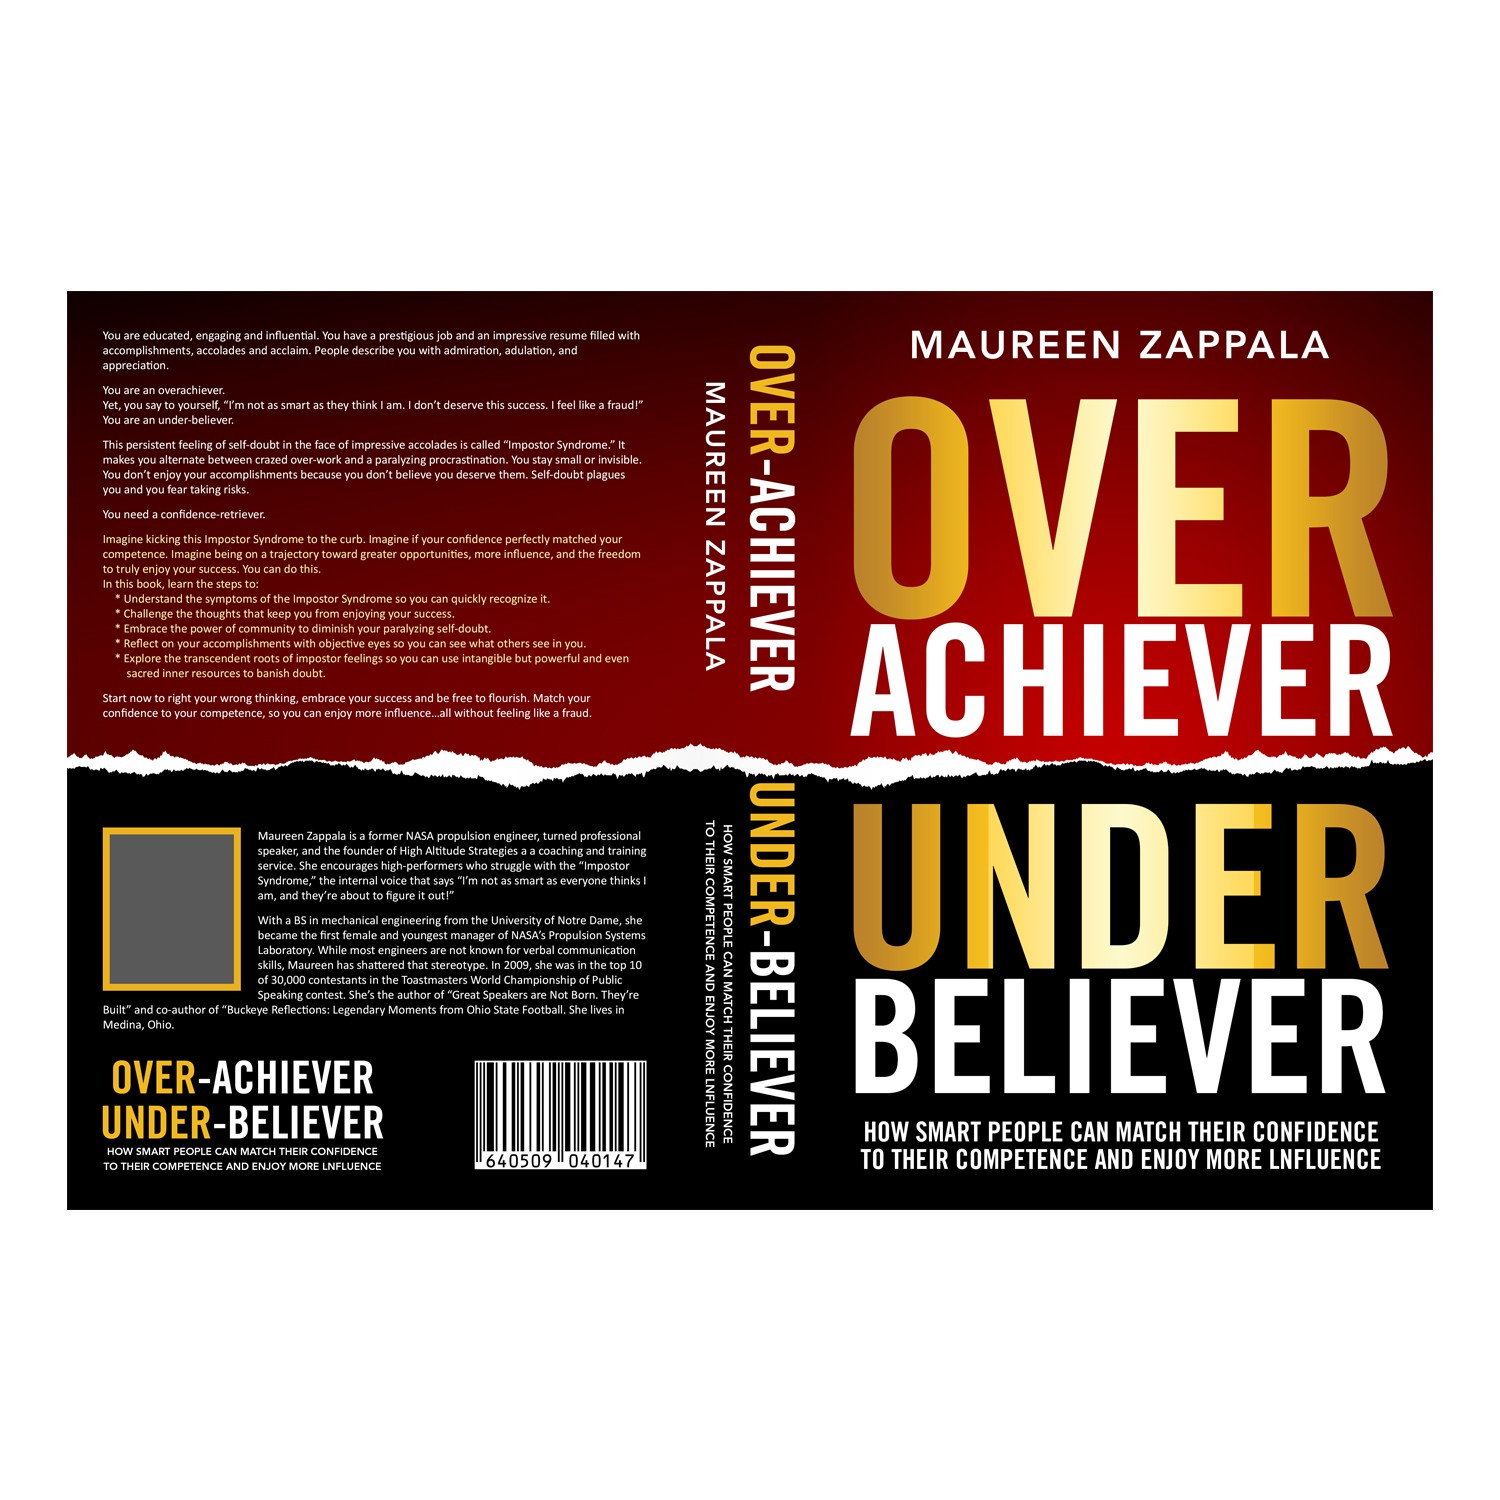 Design cover for a thought-provoking book about over-achievers